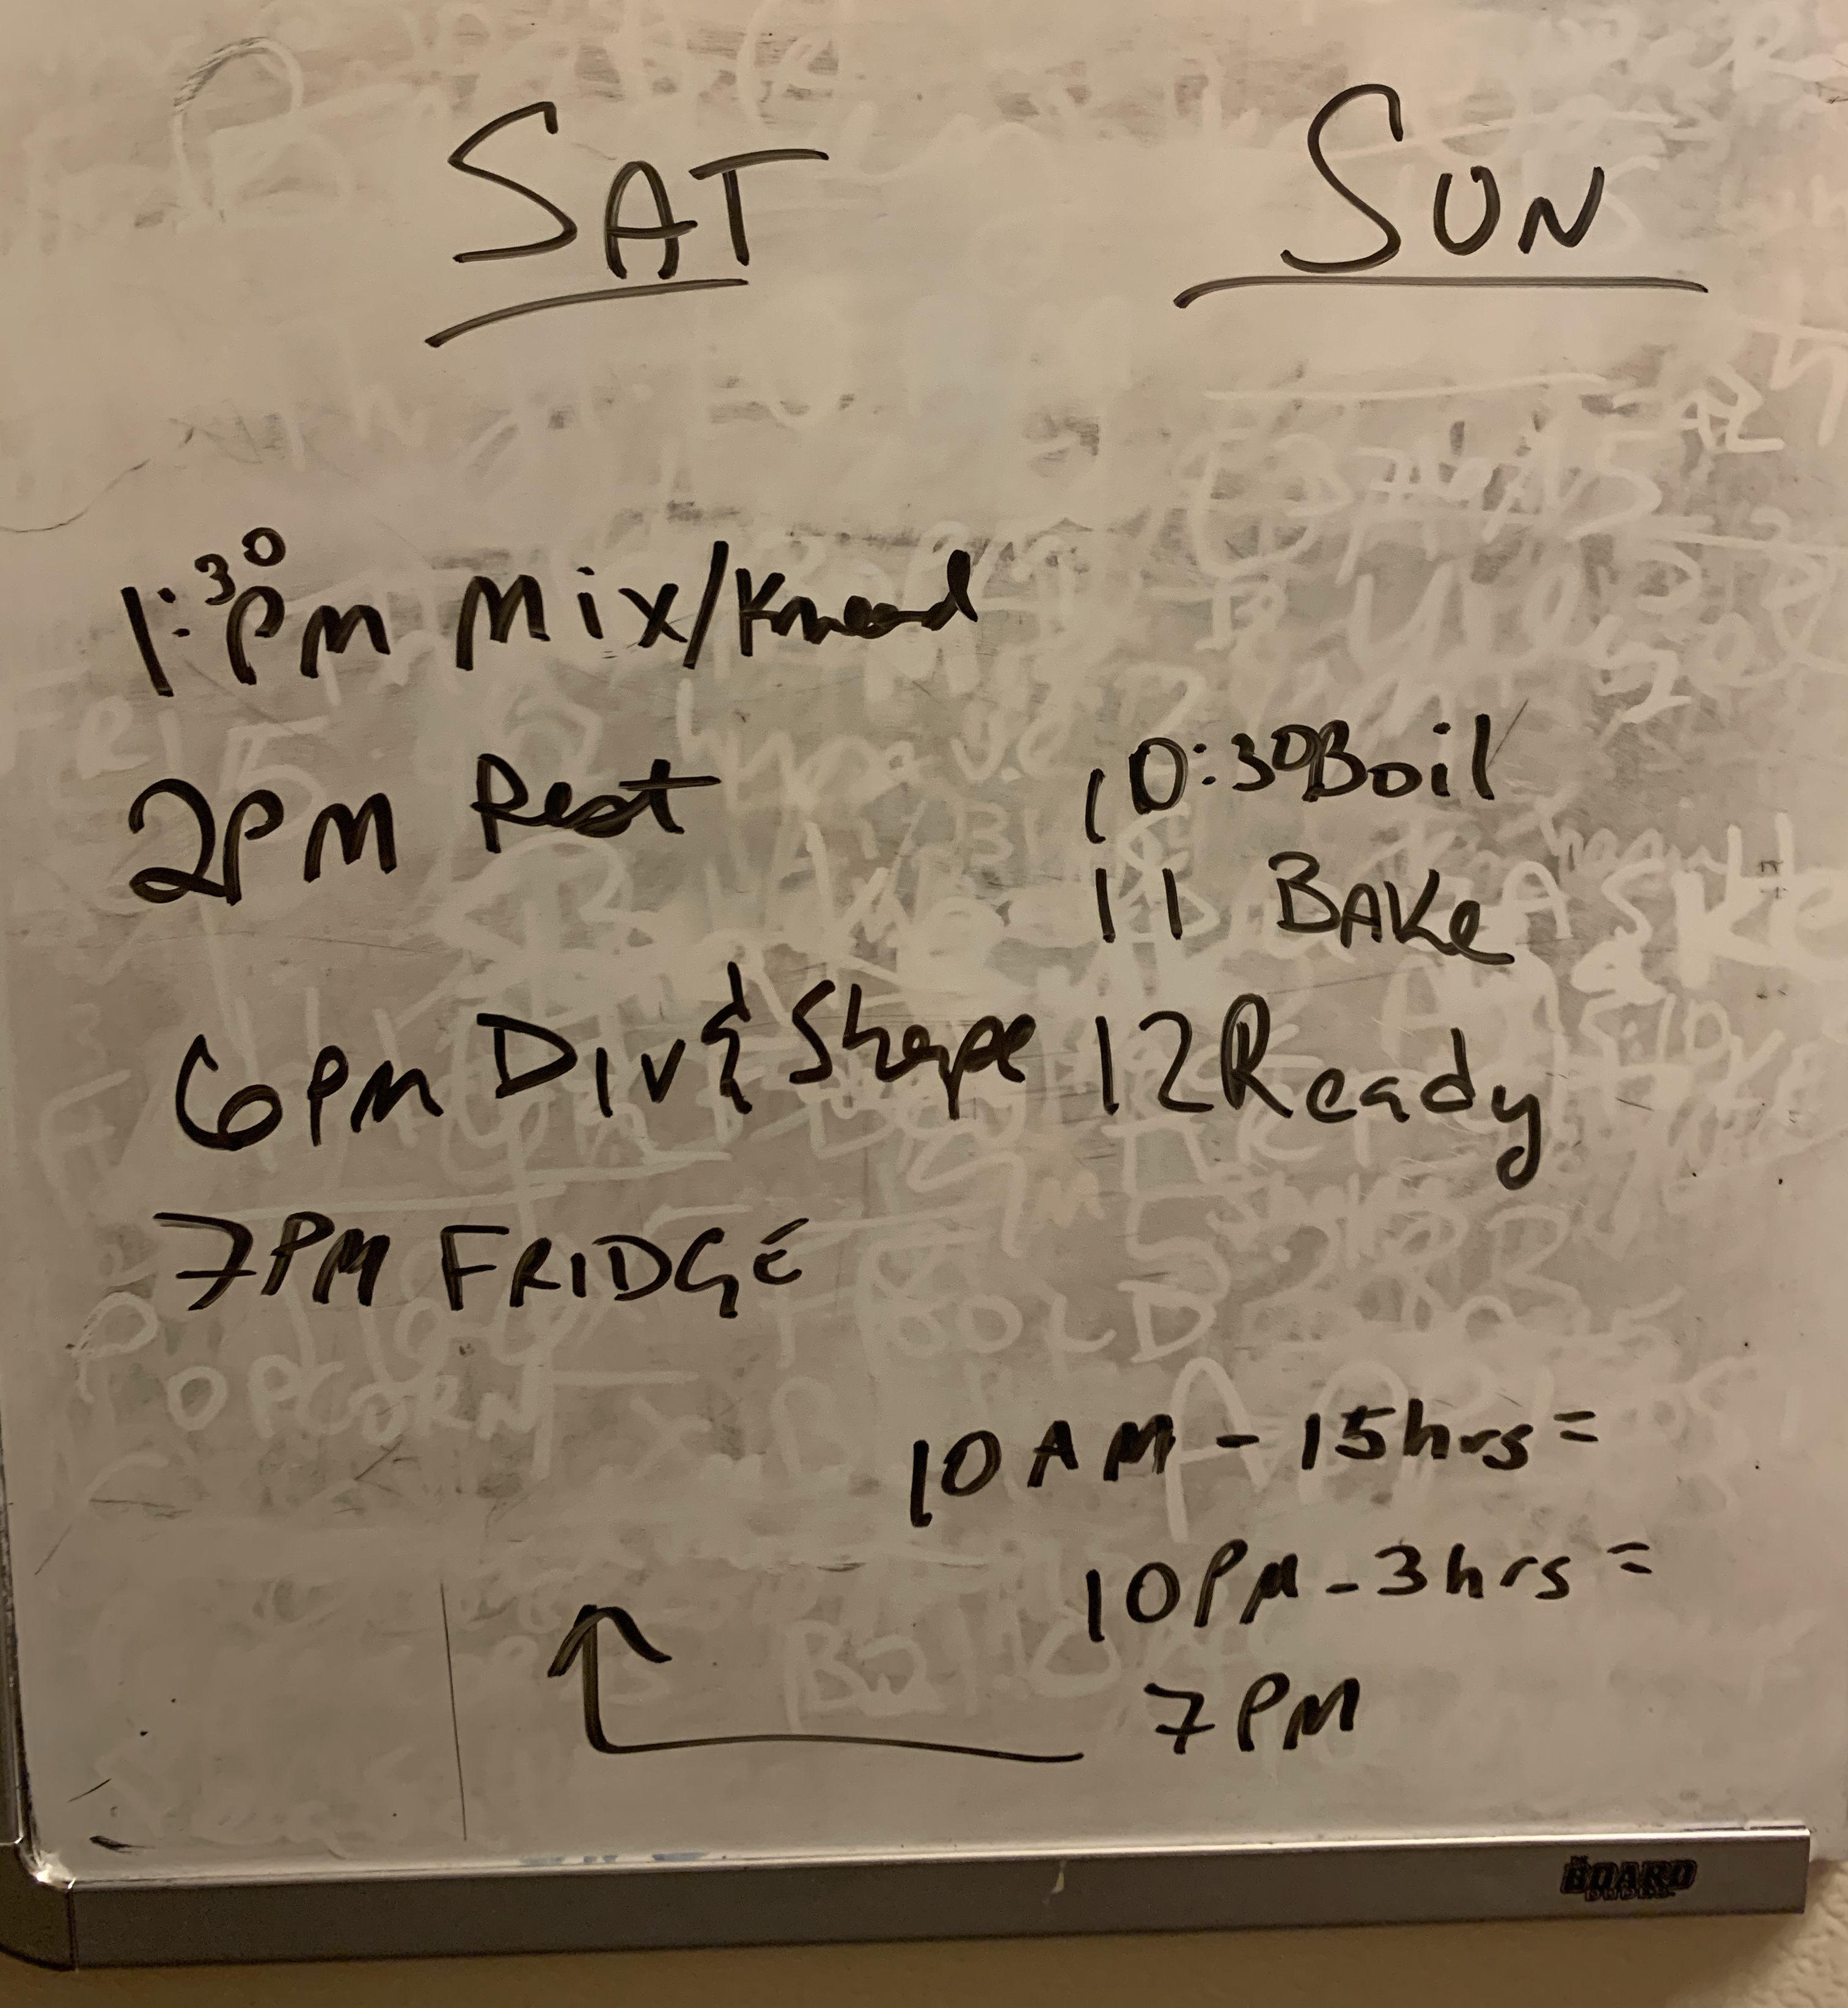 dry erase board with timing and steps for baking written out